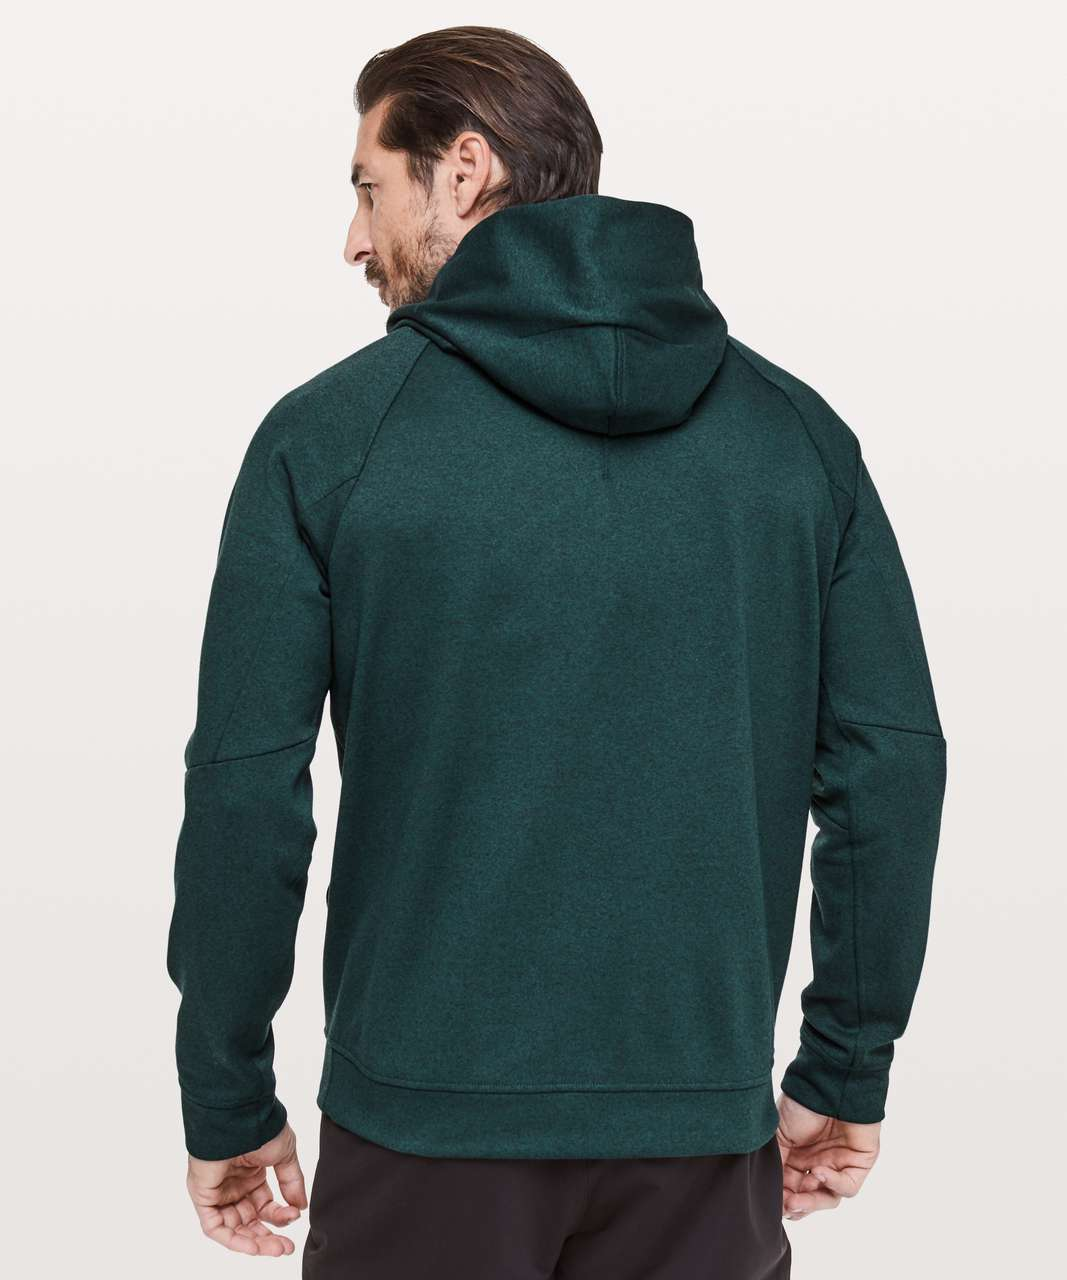 Lululemon City Sweat Pullover Hoodie *Thermo - Heathered Royal Emerald